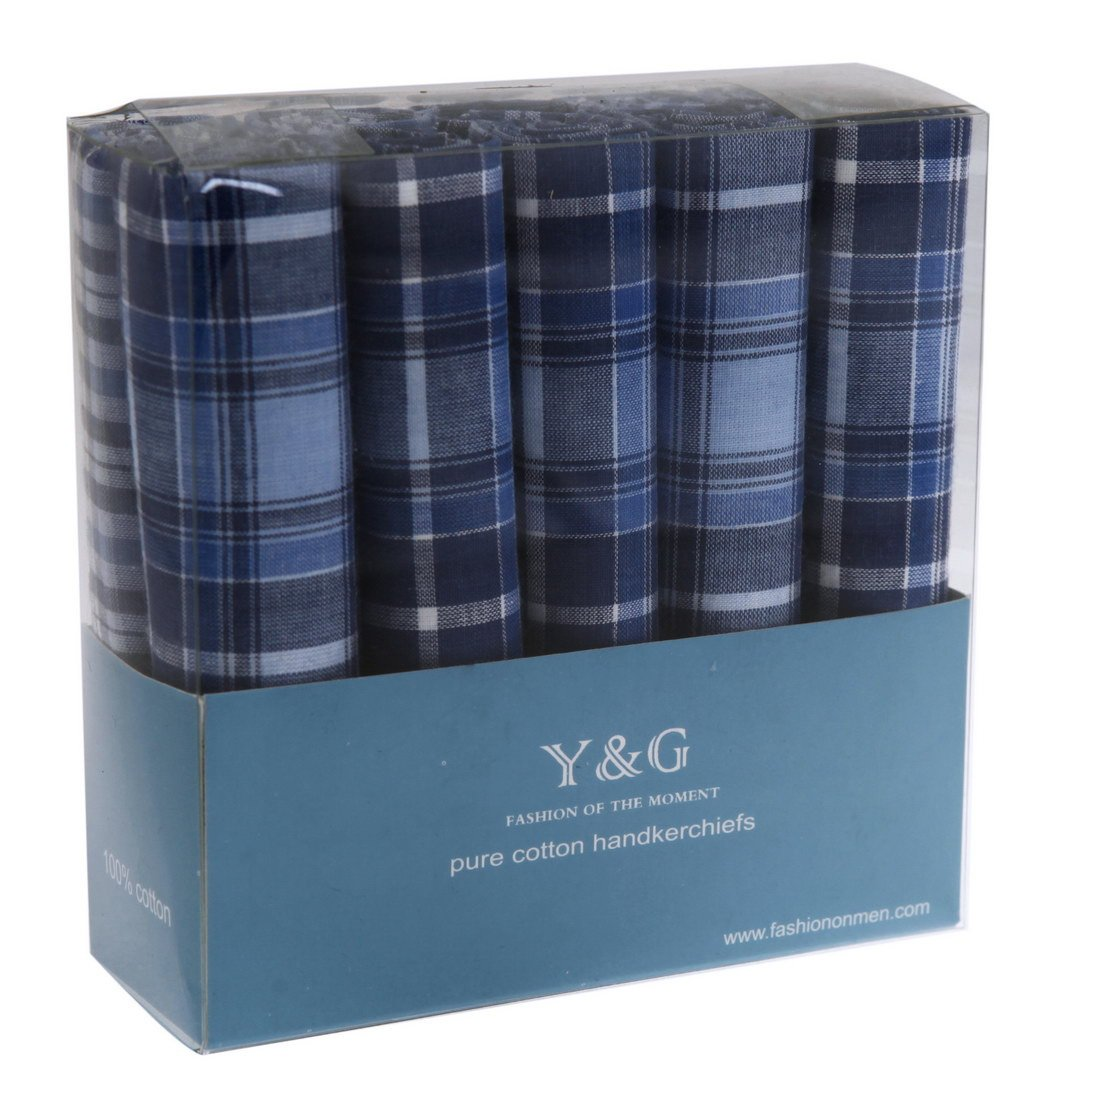 YED0105 Good Gift Idea 10 Of Set With Free Box Hankies For Wedding By Y&G